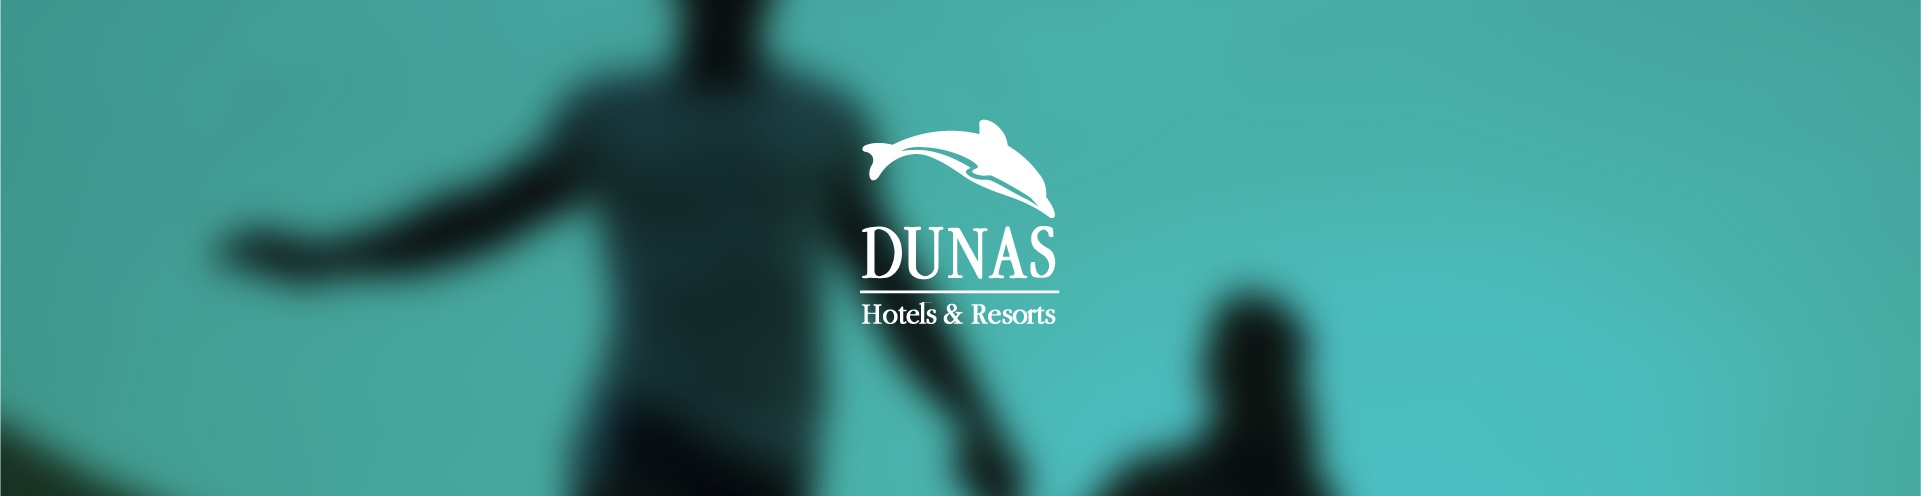 Caso de exito en marketing Dunas Hoteles